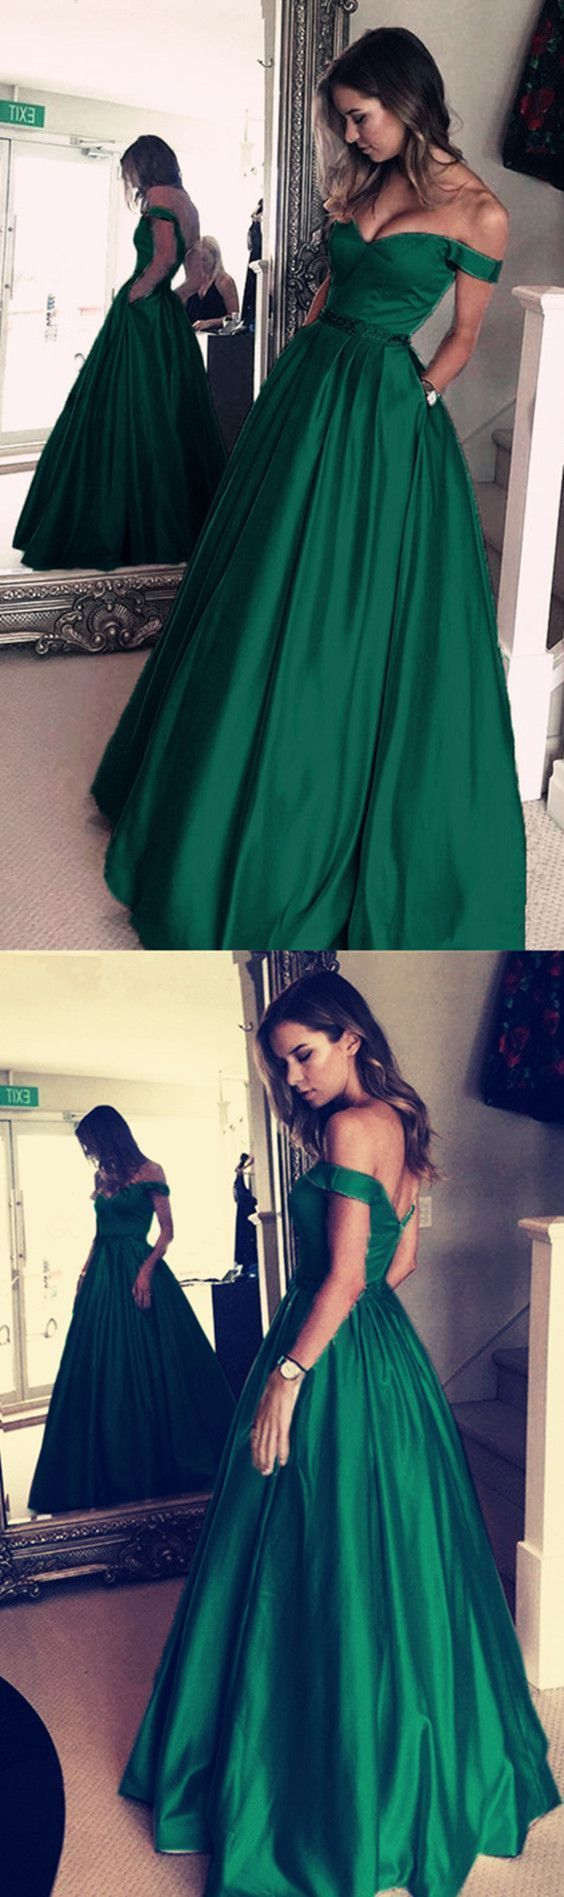 Off shoulder green simple elegant long prom dressbd if i were